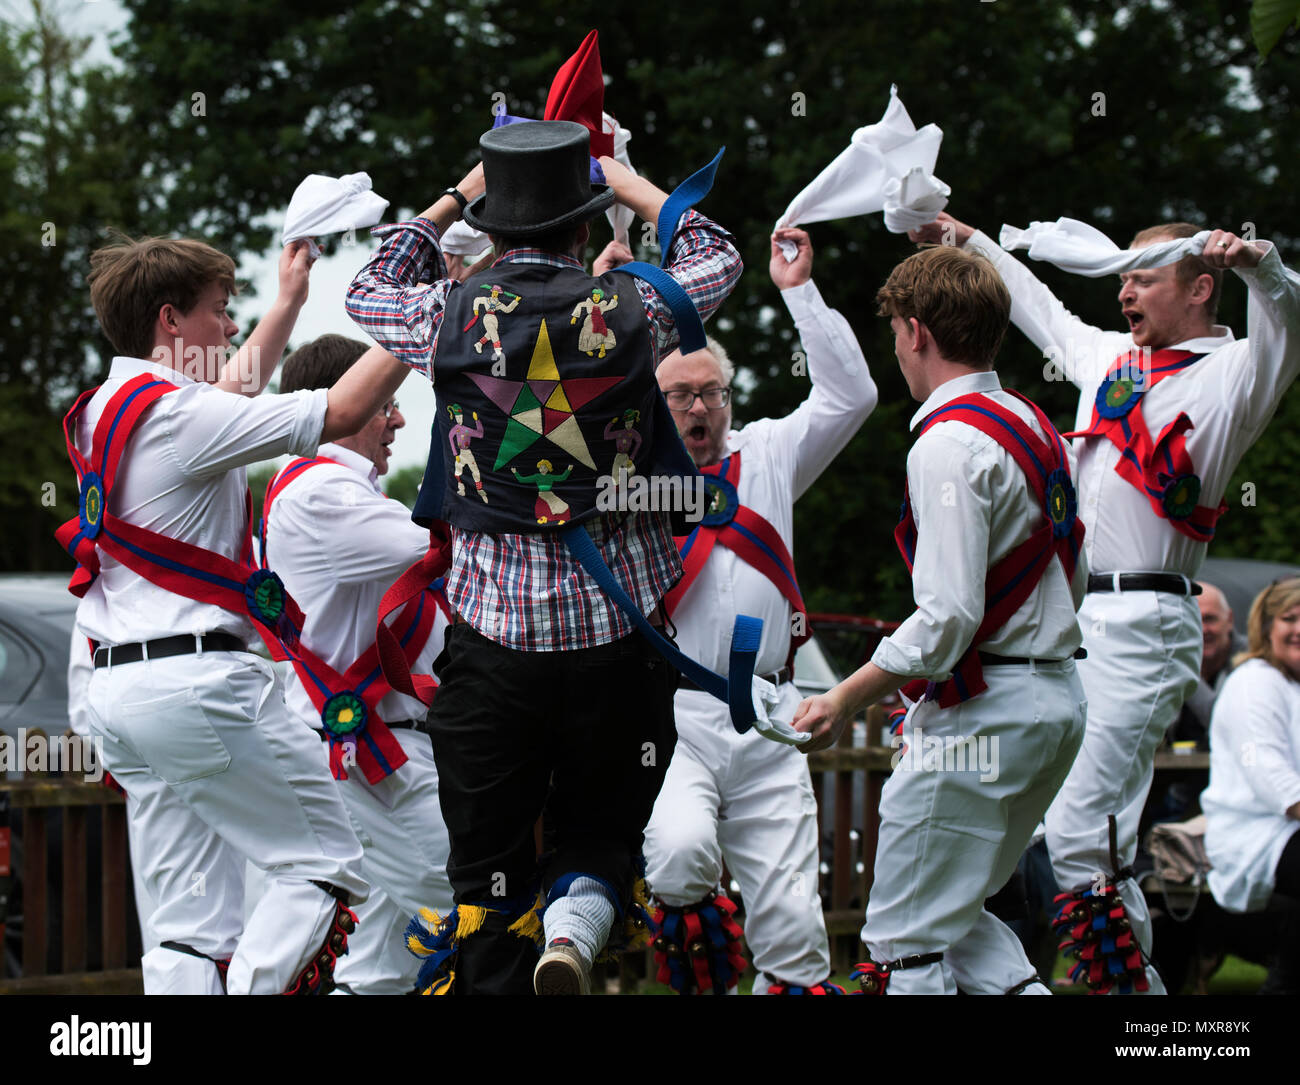 Thaxted Morris Weekend 2-3 June 2018 The Chalice Morris dancing Side at the Horse and Groom pub, Cornish Hall End, Essex. - Stock Image